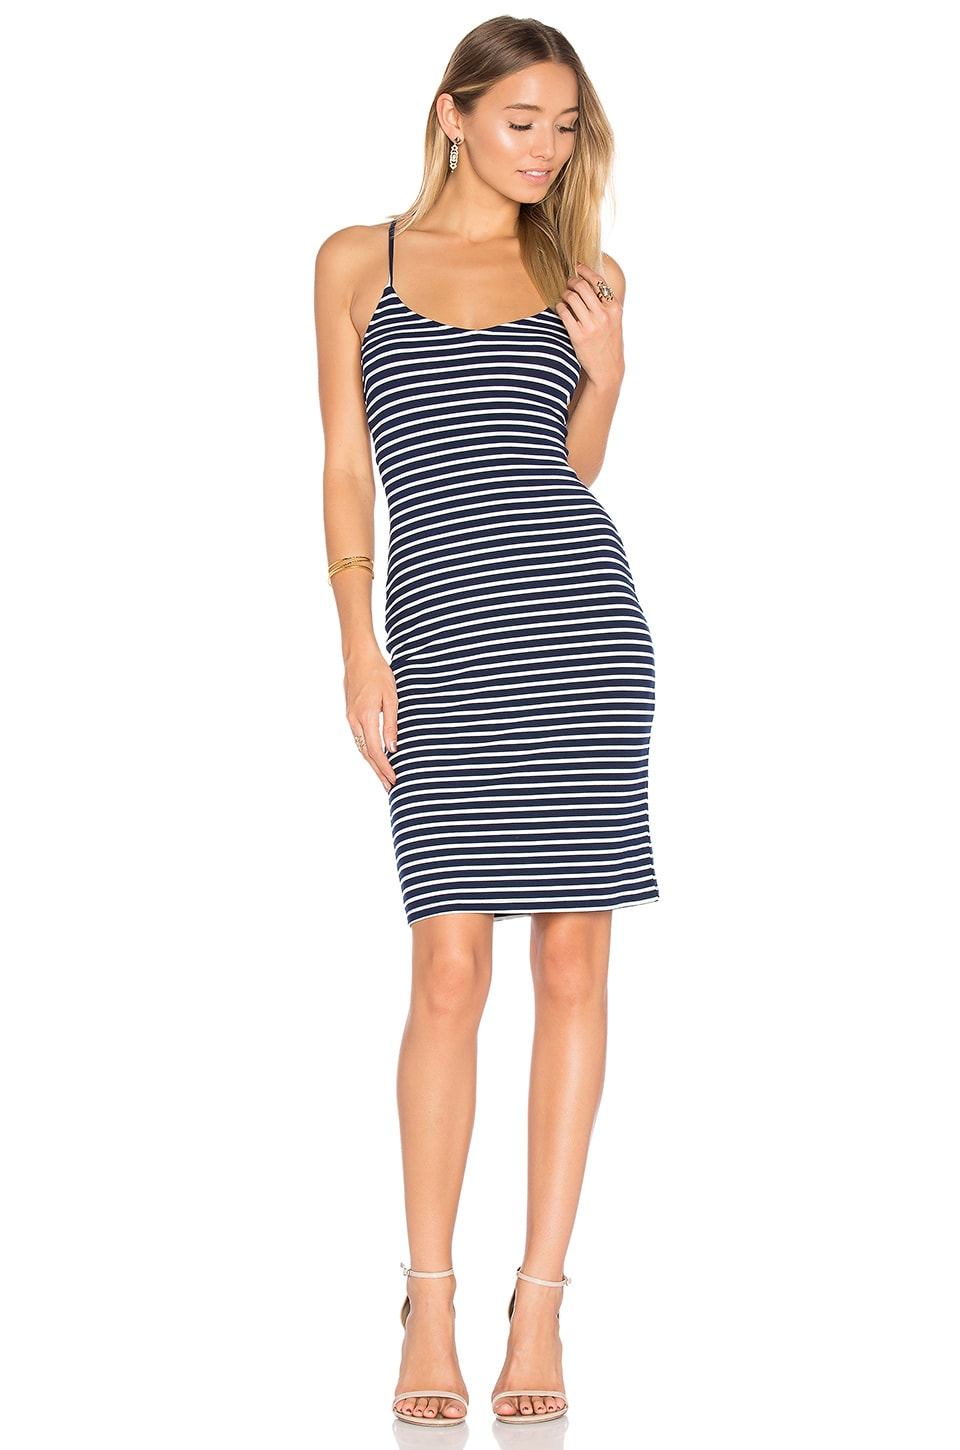 Lovers + Friends Skyfall Midi Dress in Navy Stripe